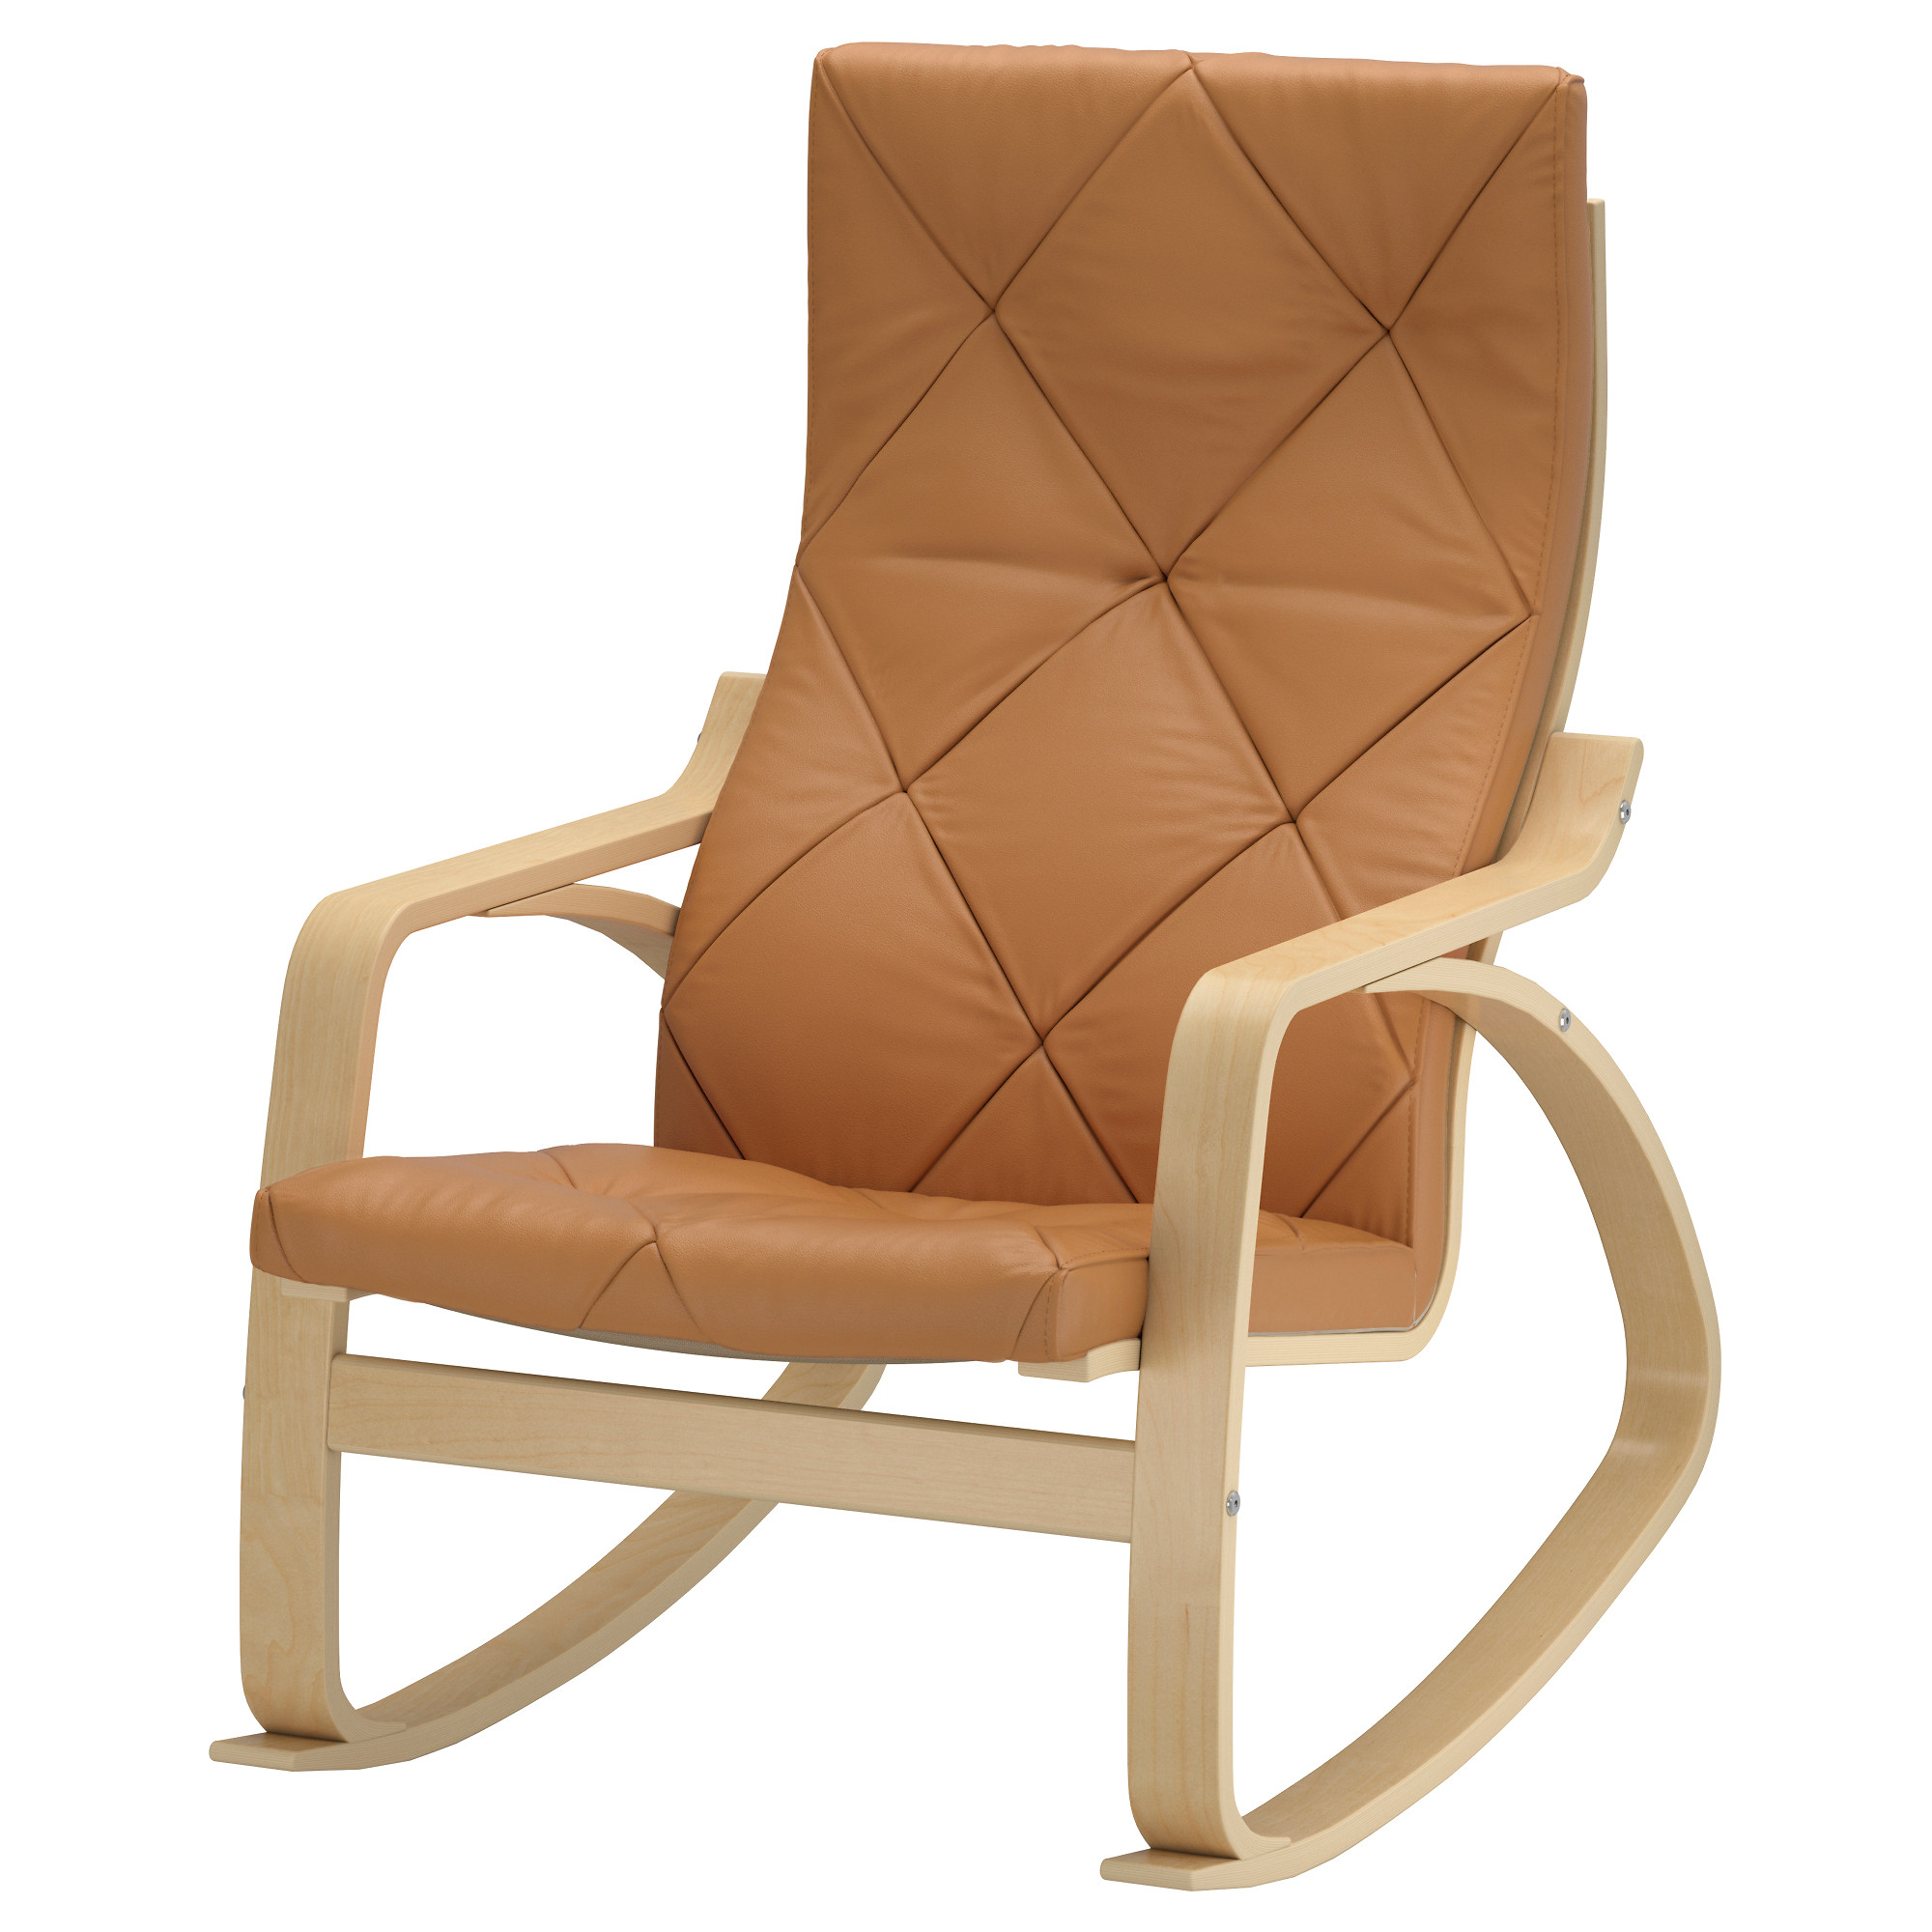 "PO""NG Rocking chair Seglora natural IKEA"